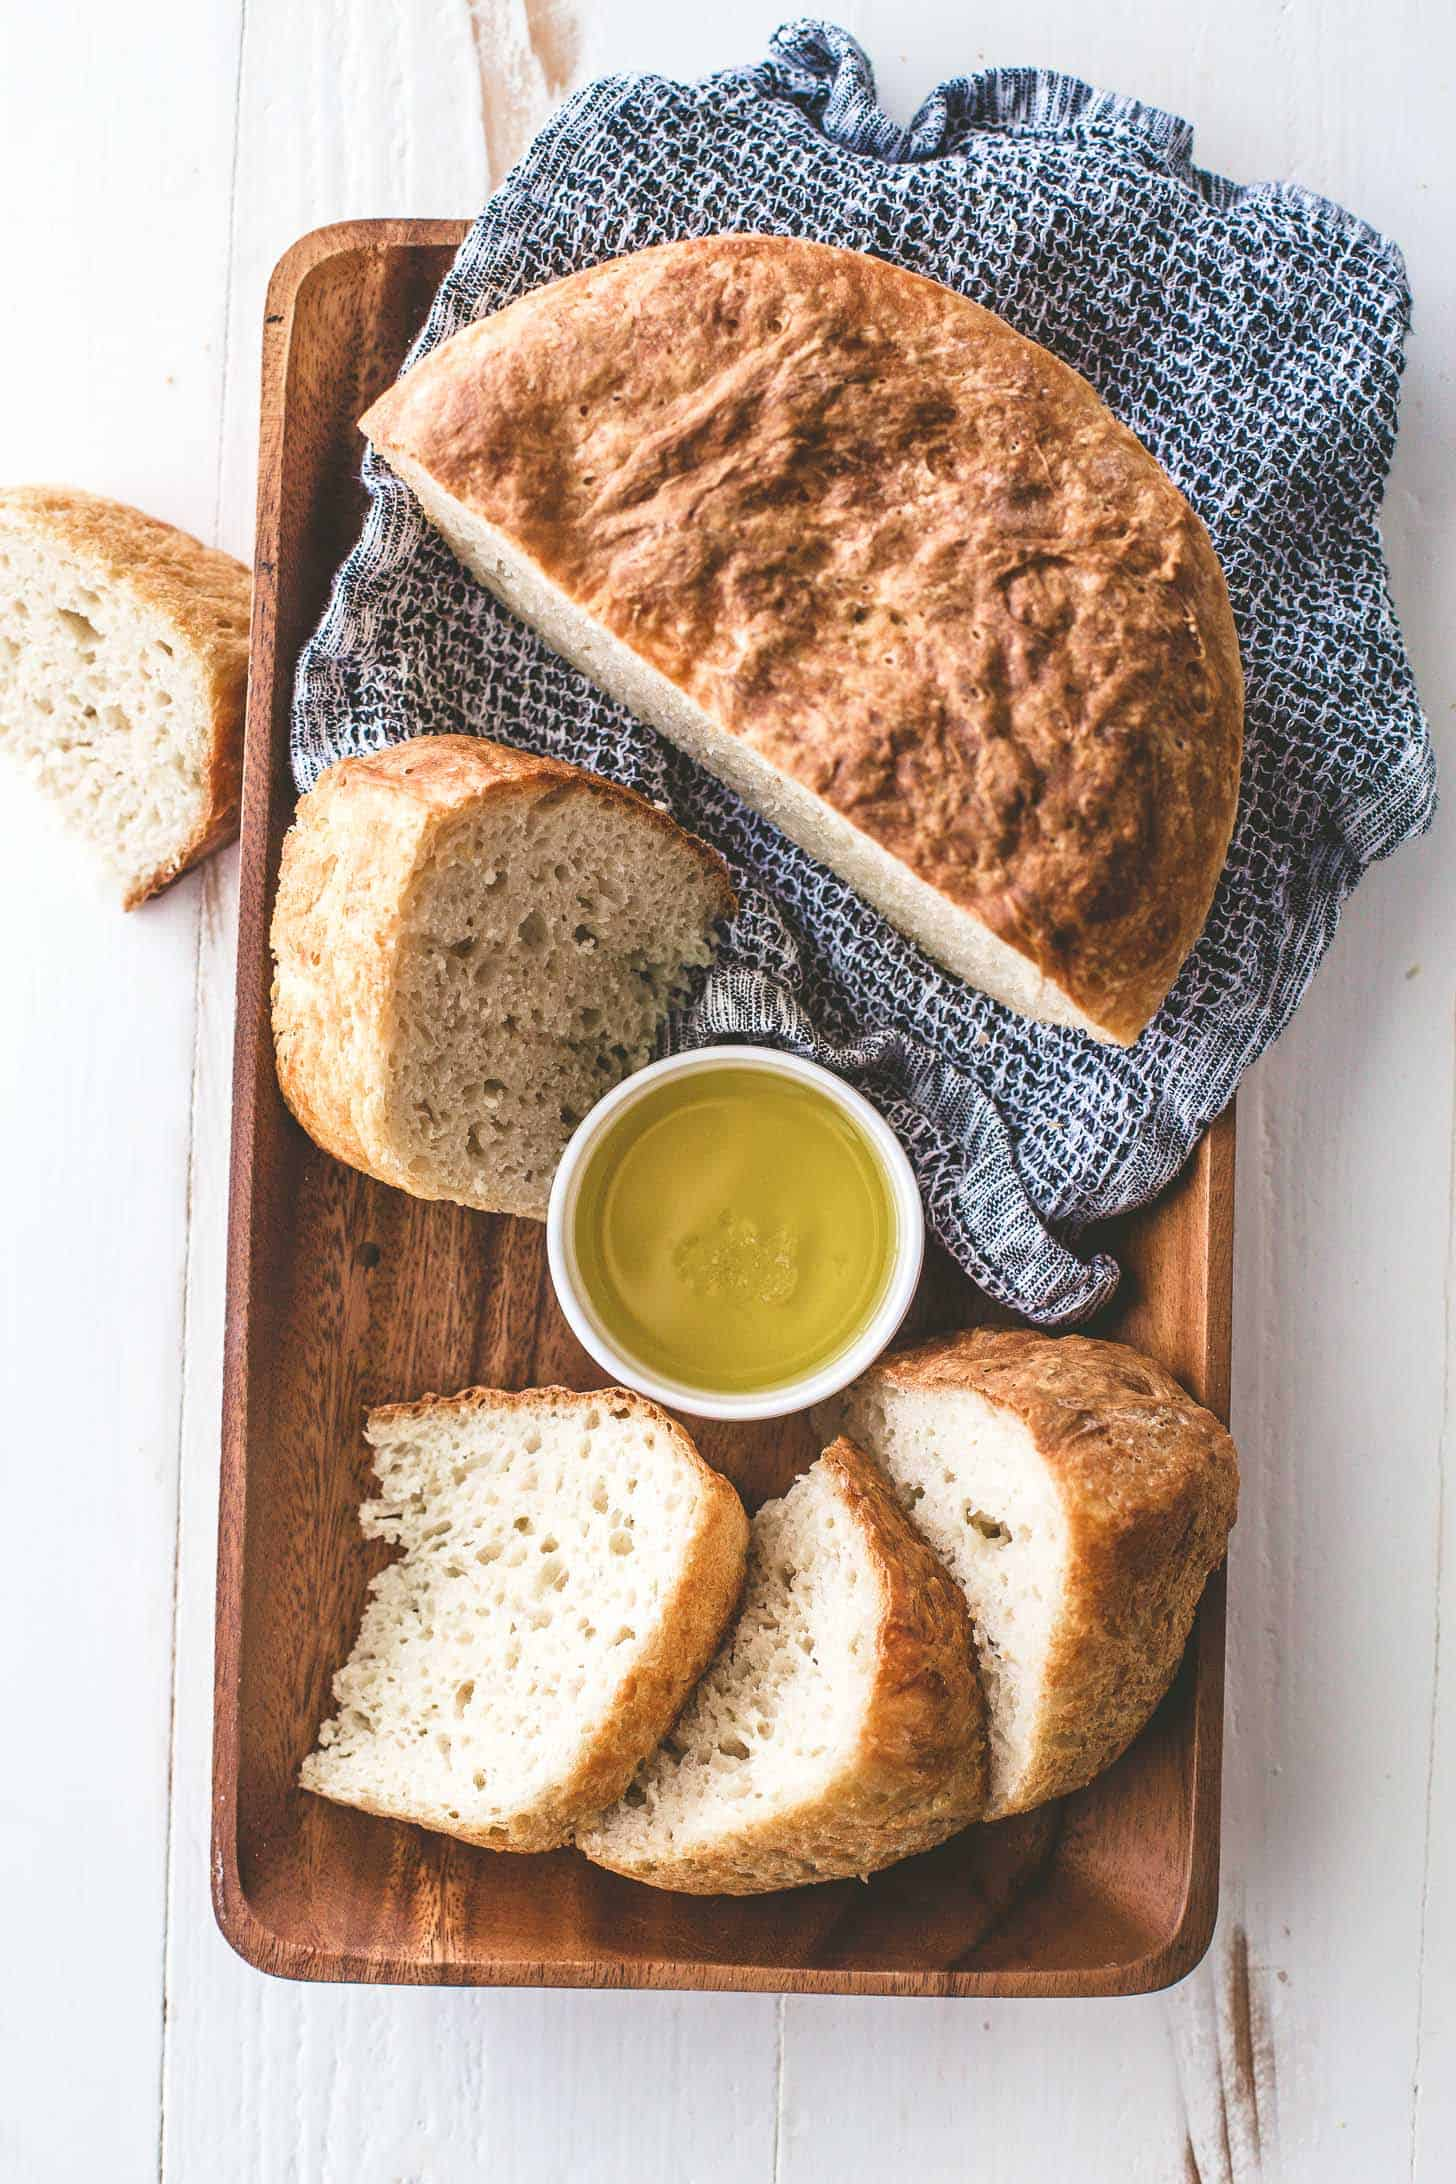 no knead everyday bread sliced and resting on a wooden tray with a blue towel draped over the corner